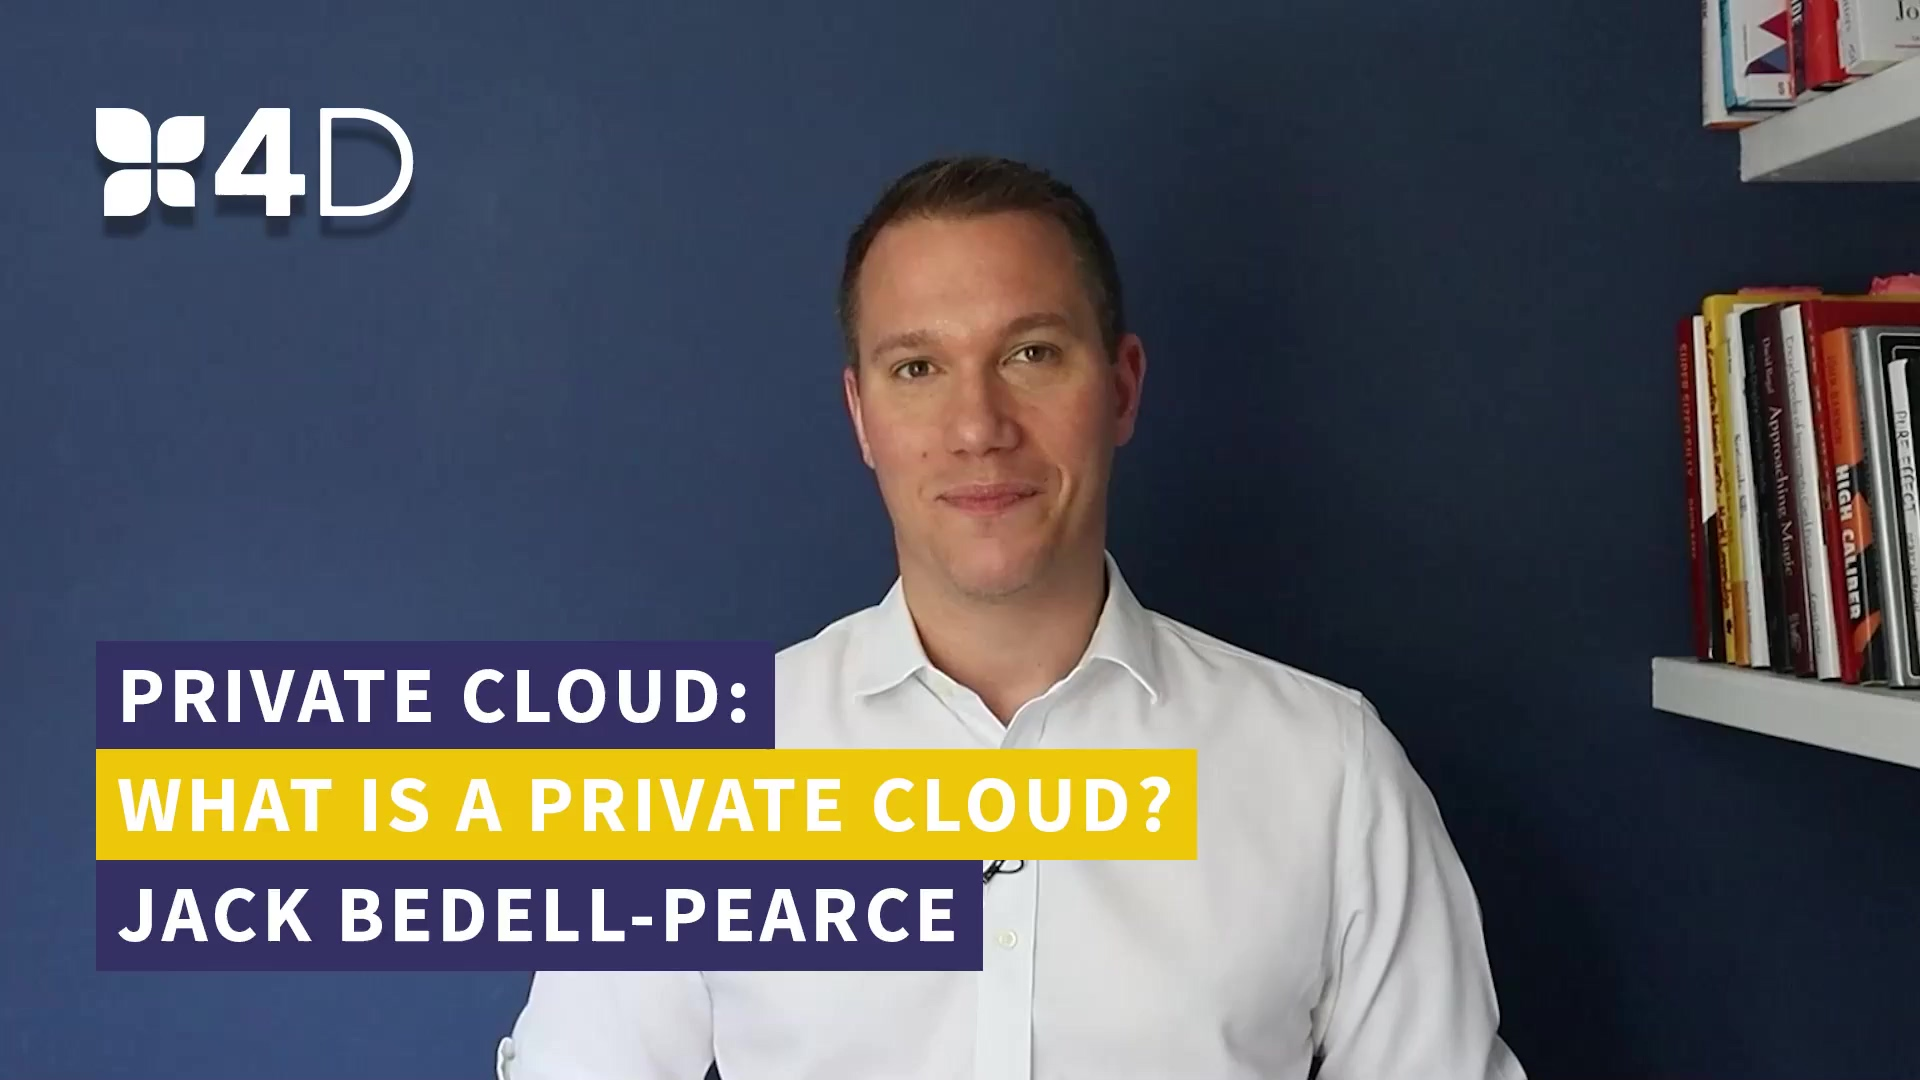 4D - What is a Private Cloud